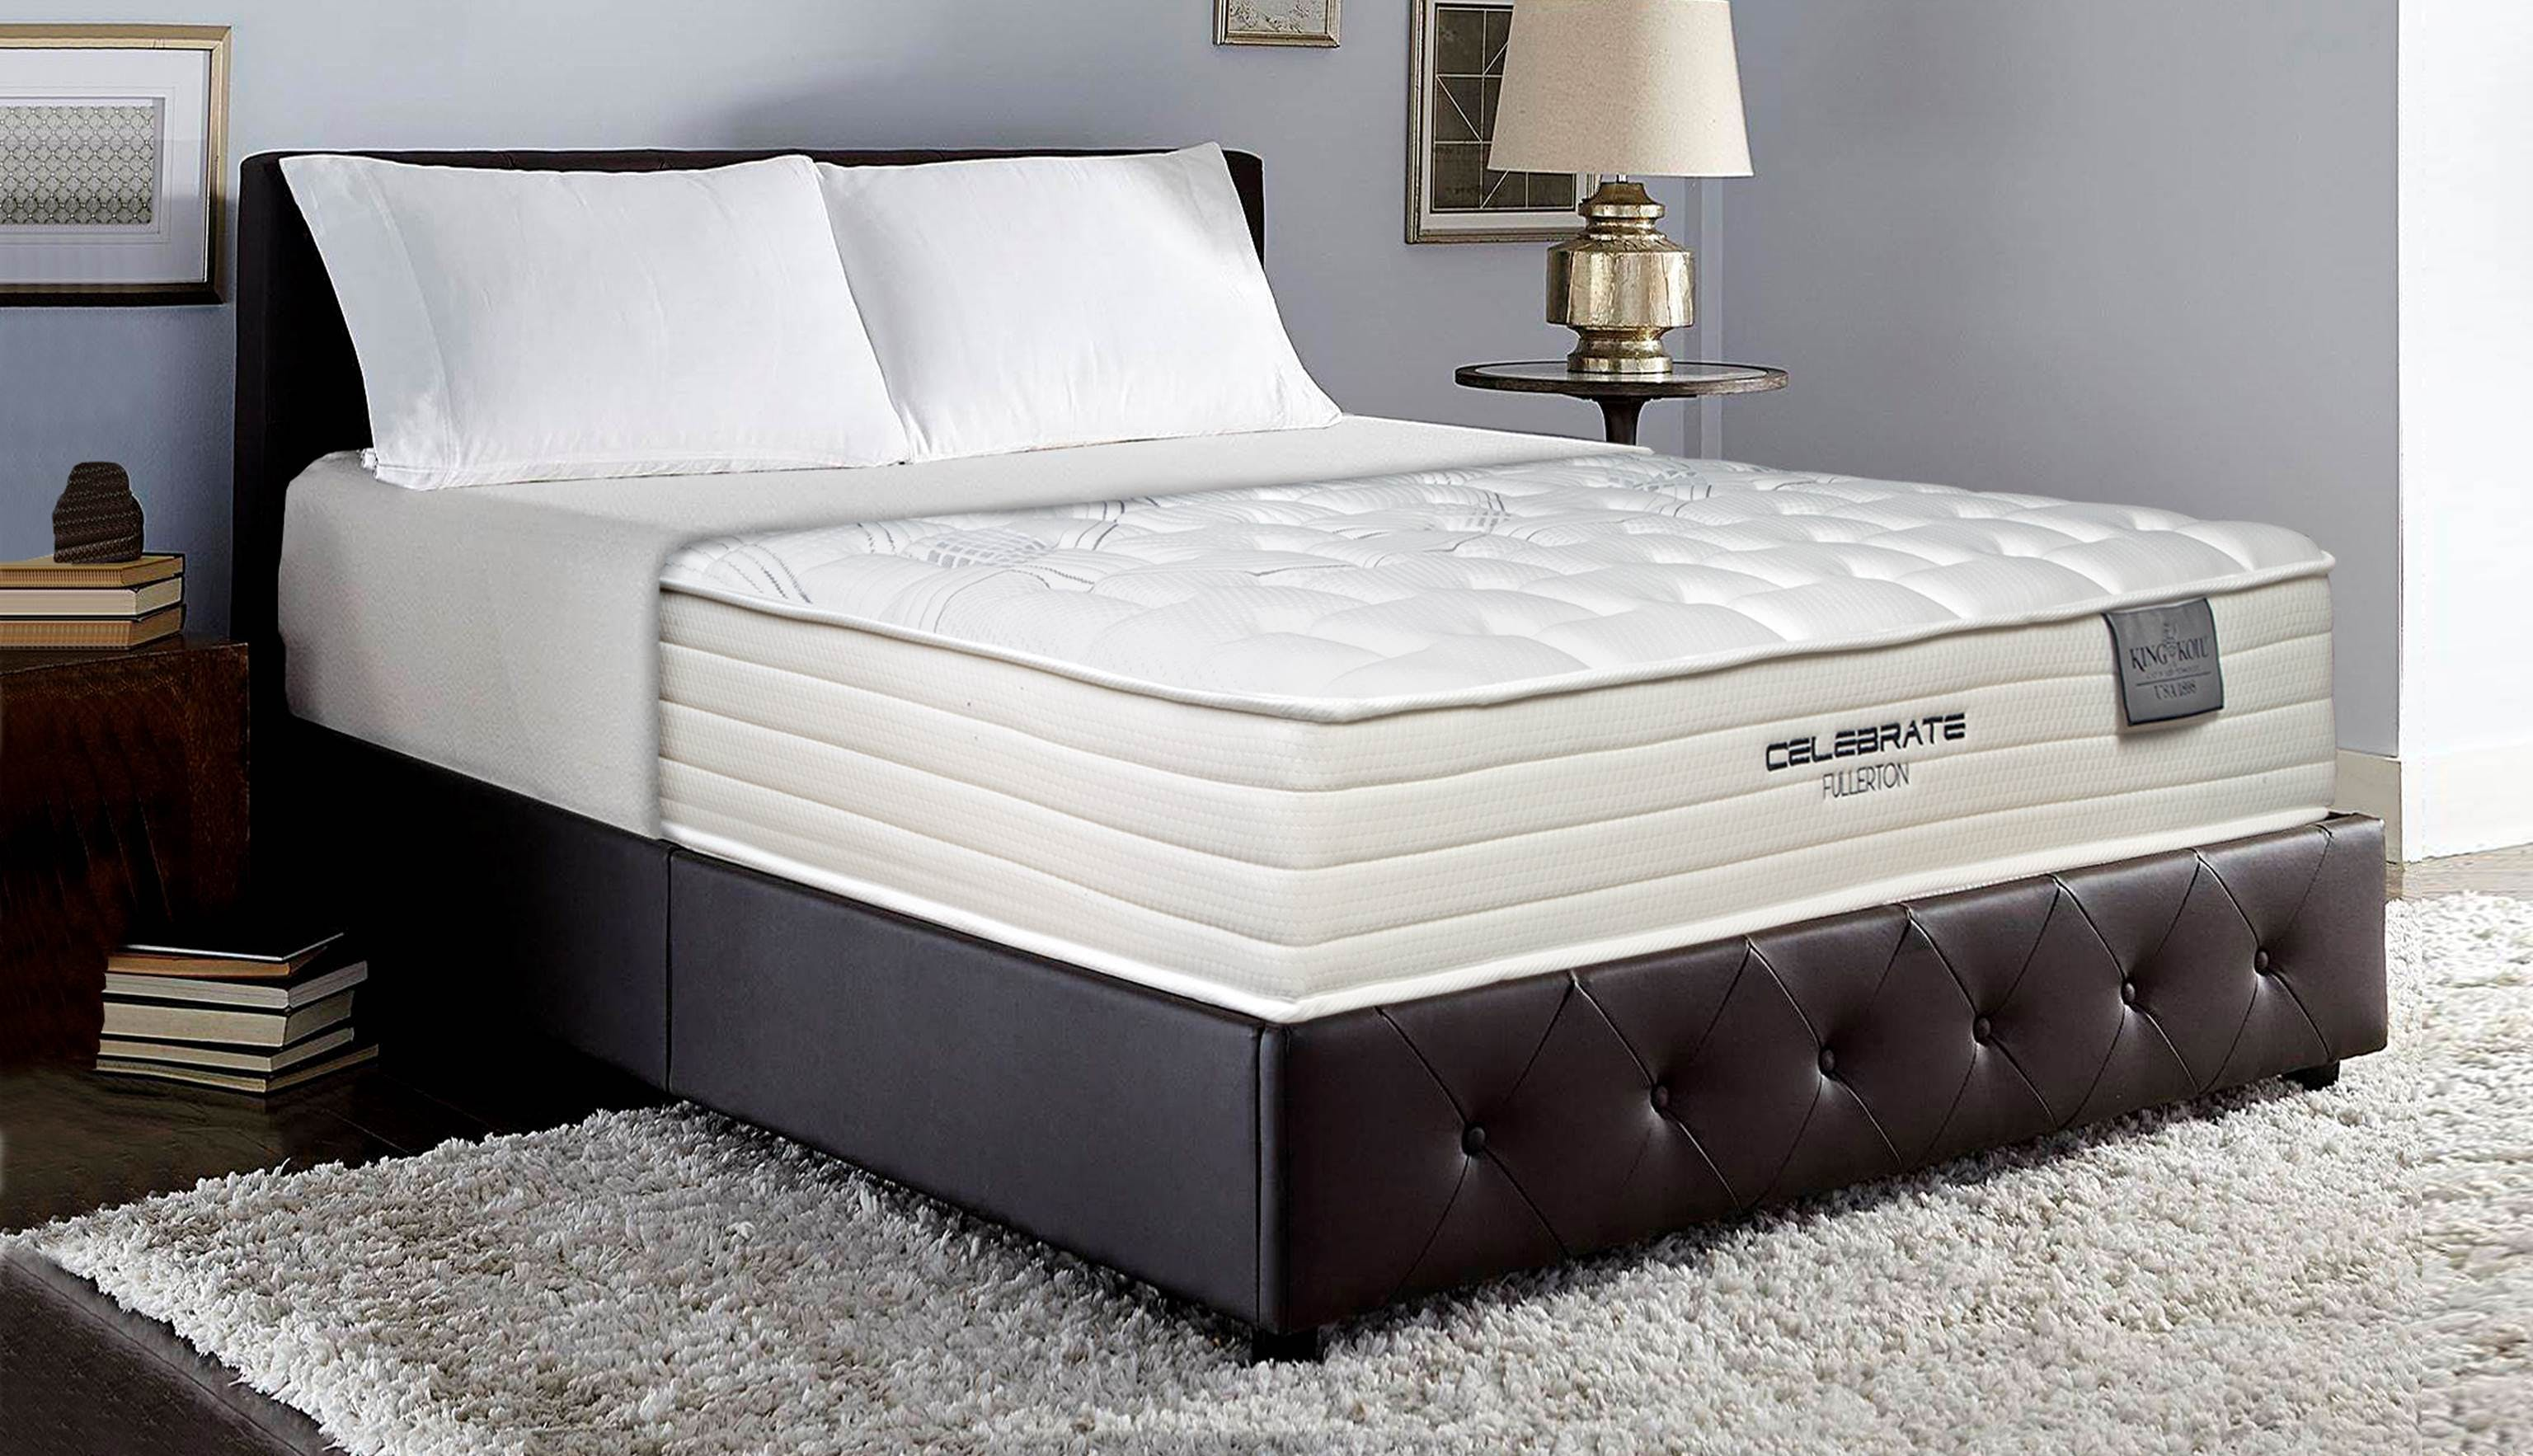 q queen gemini catalog restonic mattress